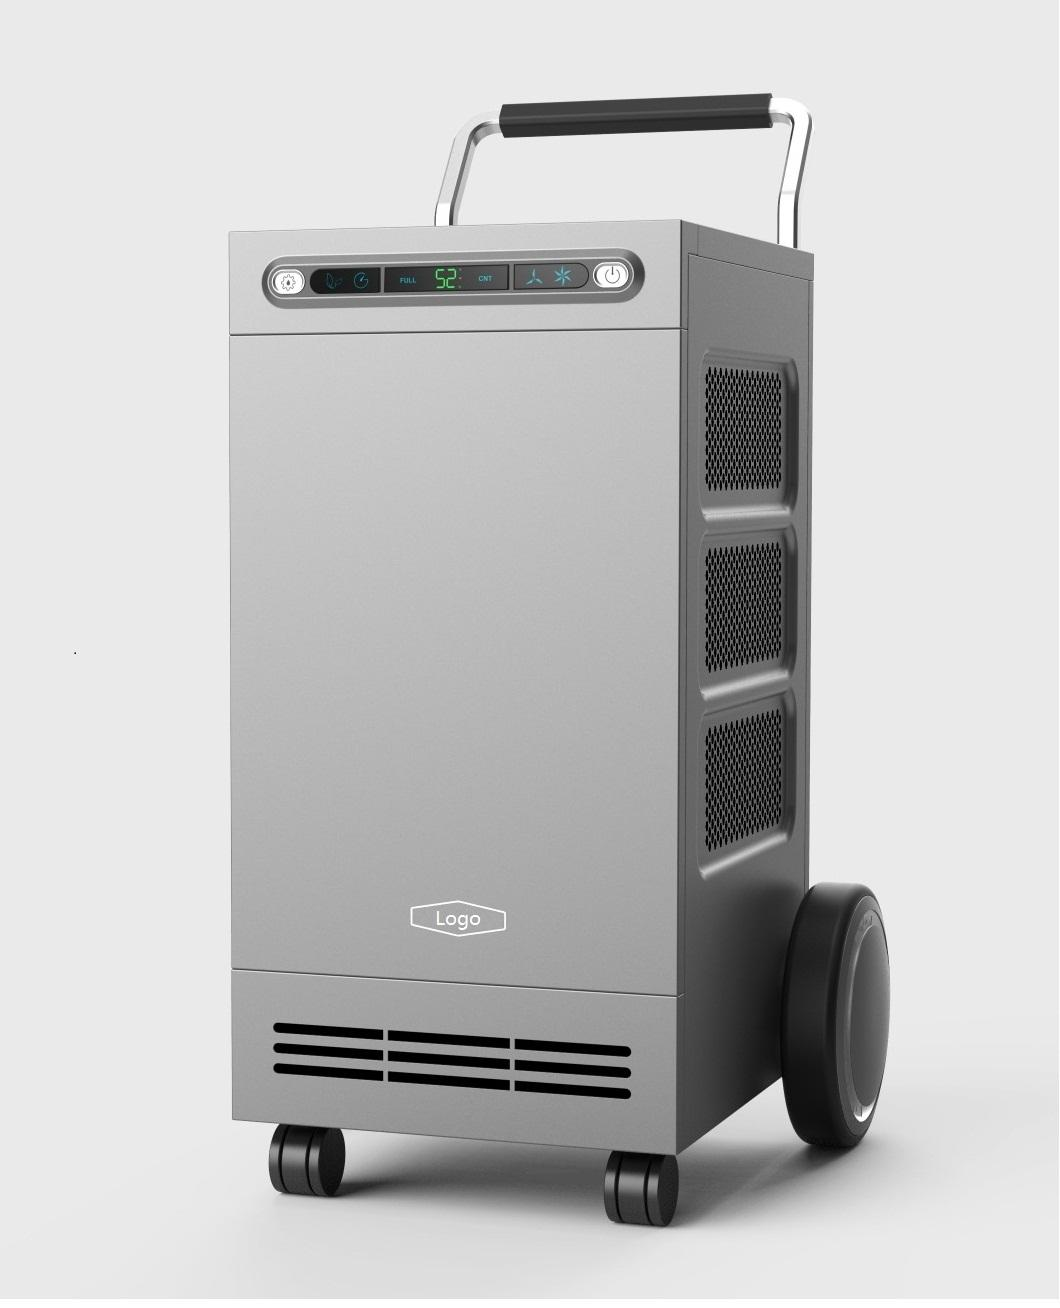 2019 Modern Design 120L Portable Commercial Refrigerated Dehumidifier